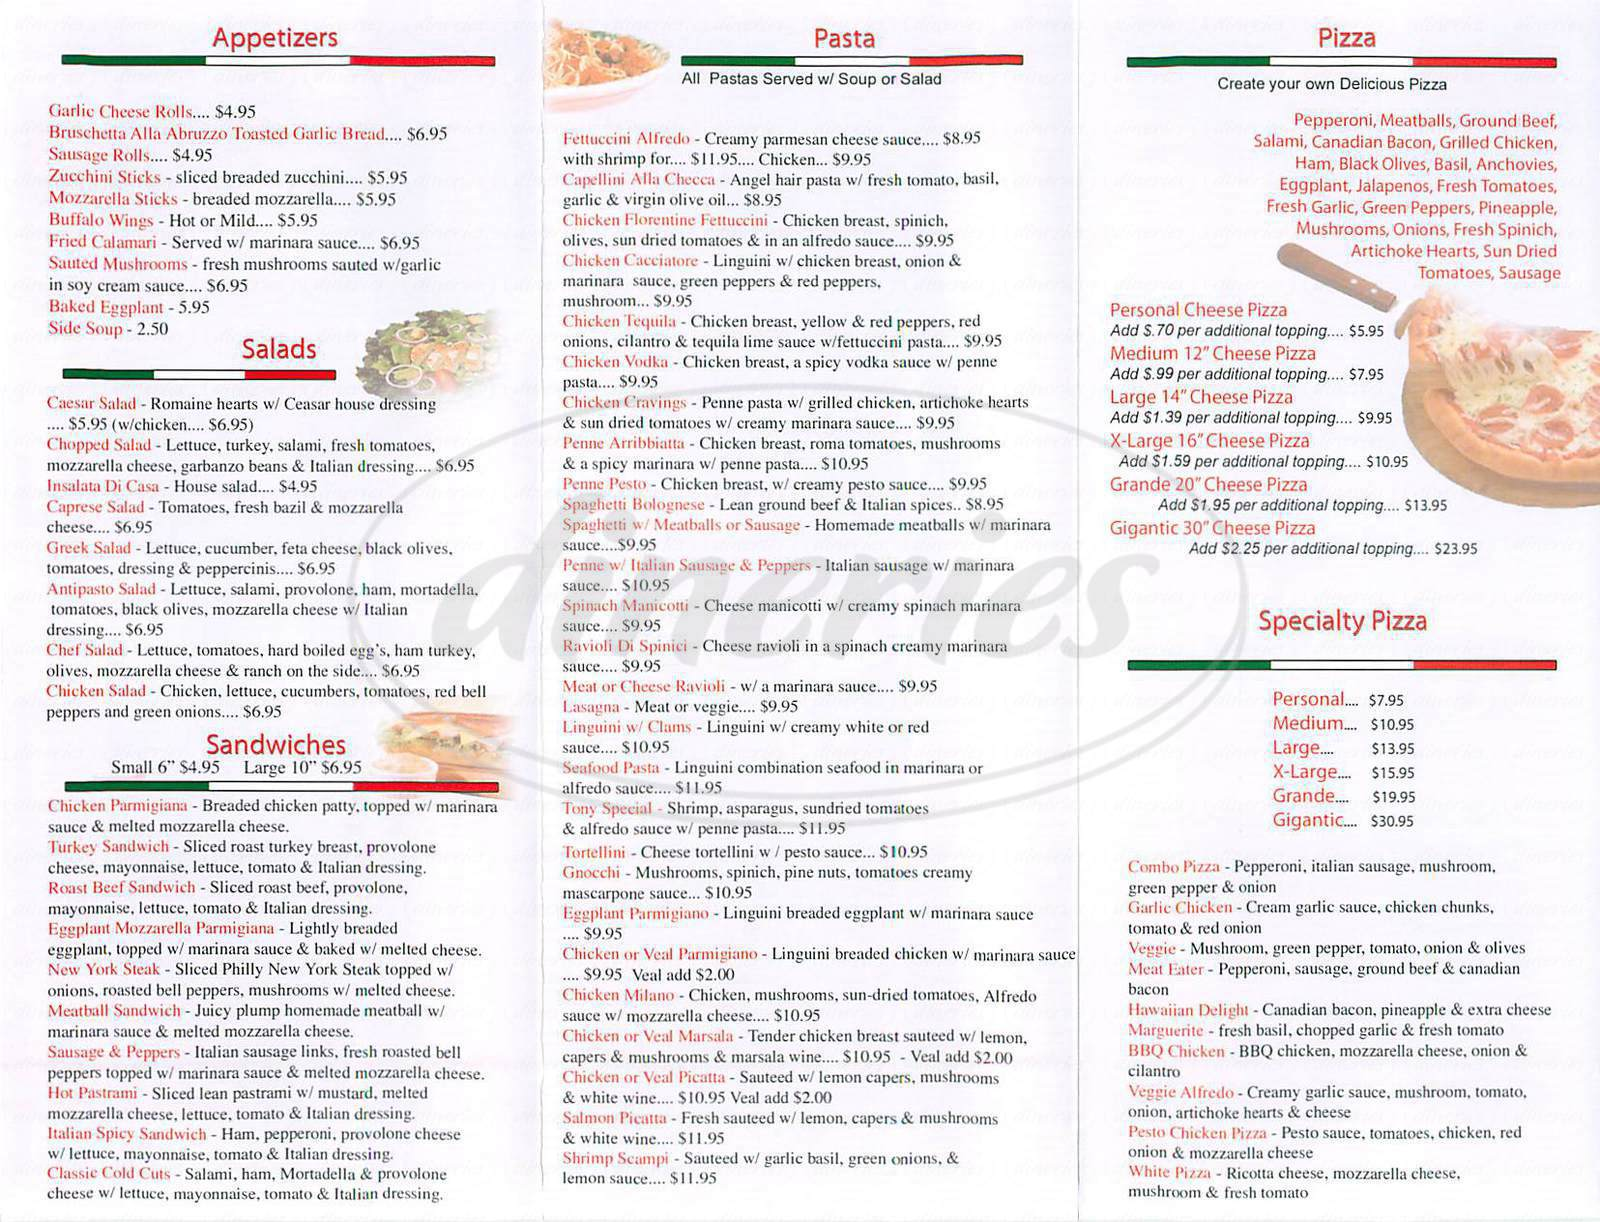 menu for Italian Cravings Pizzeria